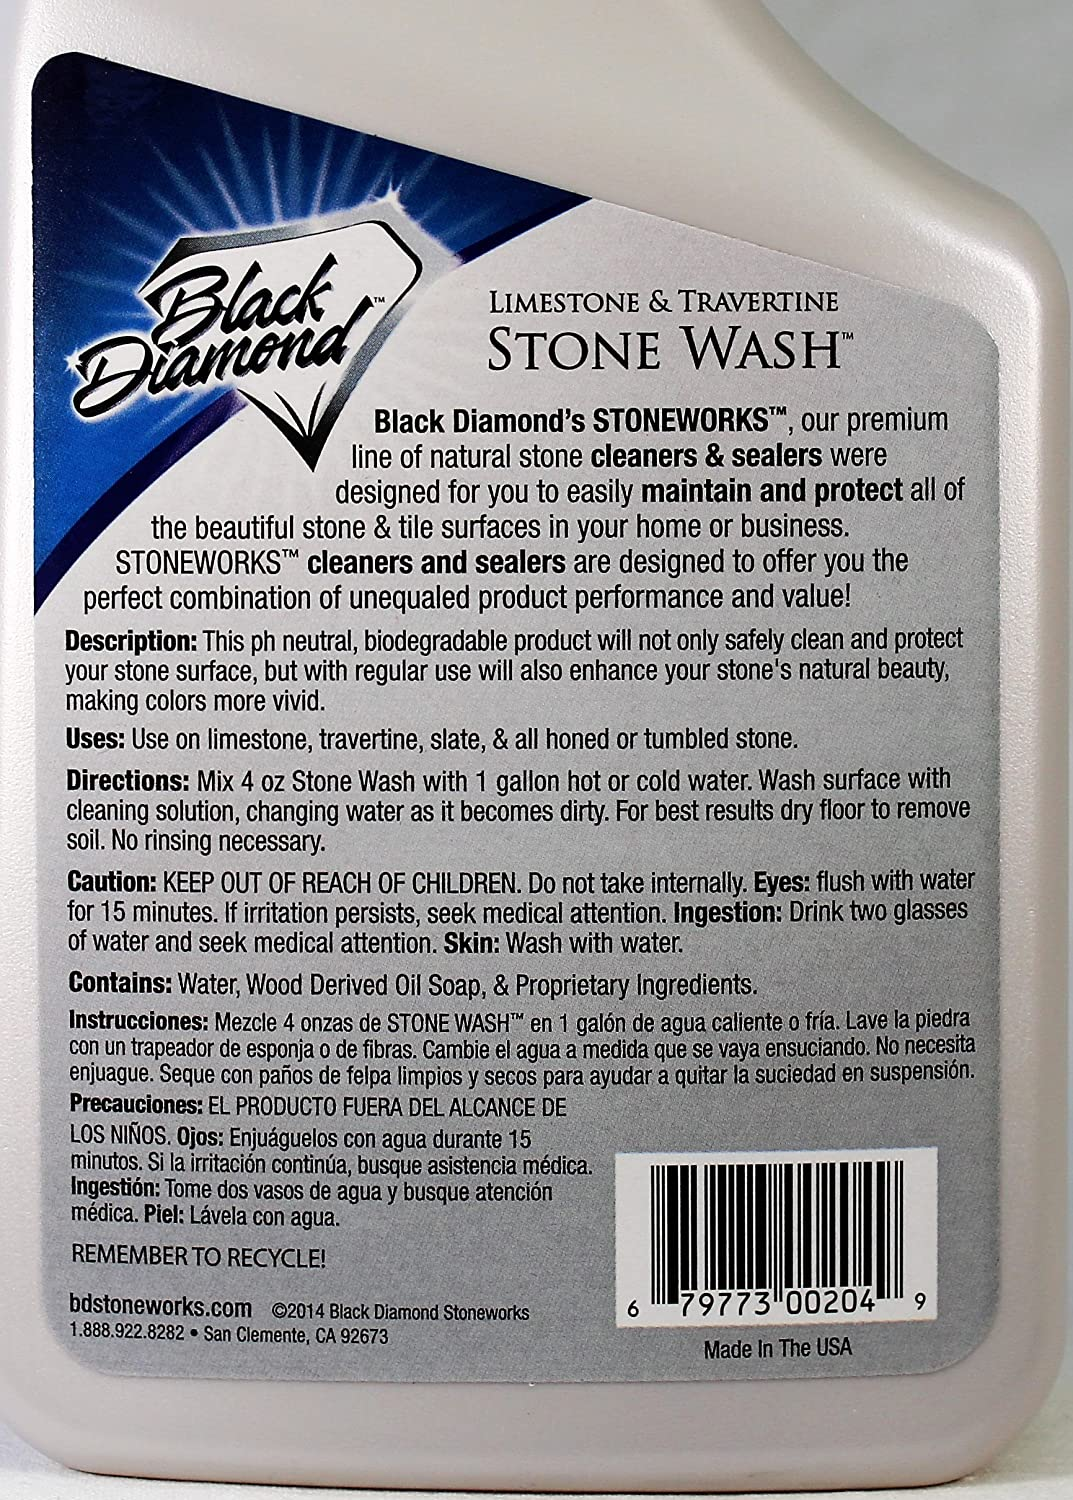 Amazon black diamond stone wash for cleaning limestone amazon black diamond stone wash for cleaning limestone travertine marble honed or tumbled natural stone floors concentrate set of 2 qts home dailygadgetfo Gallery